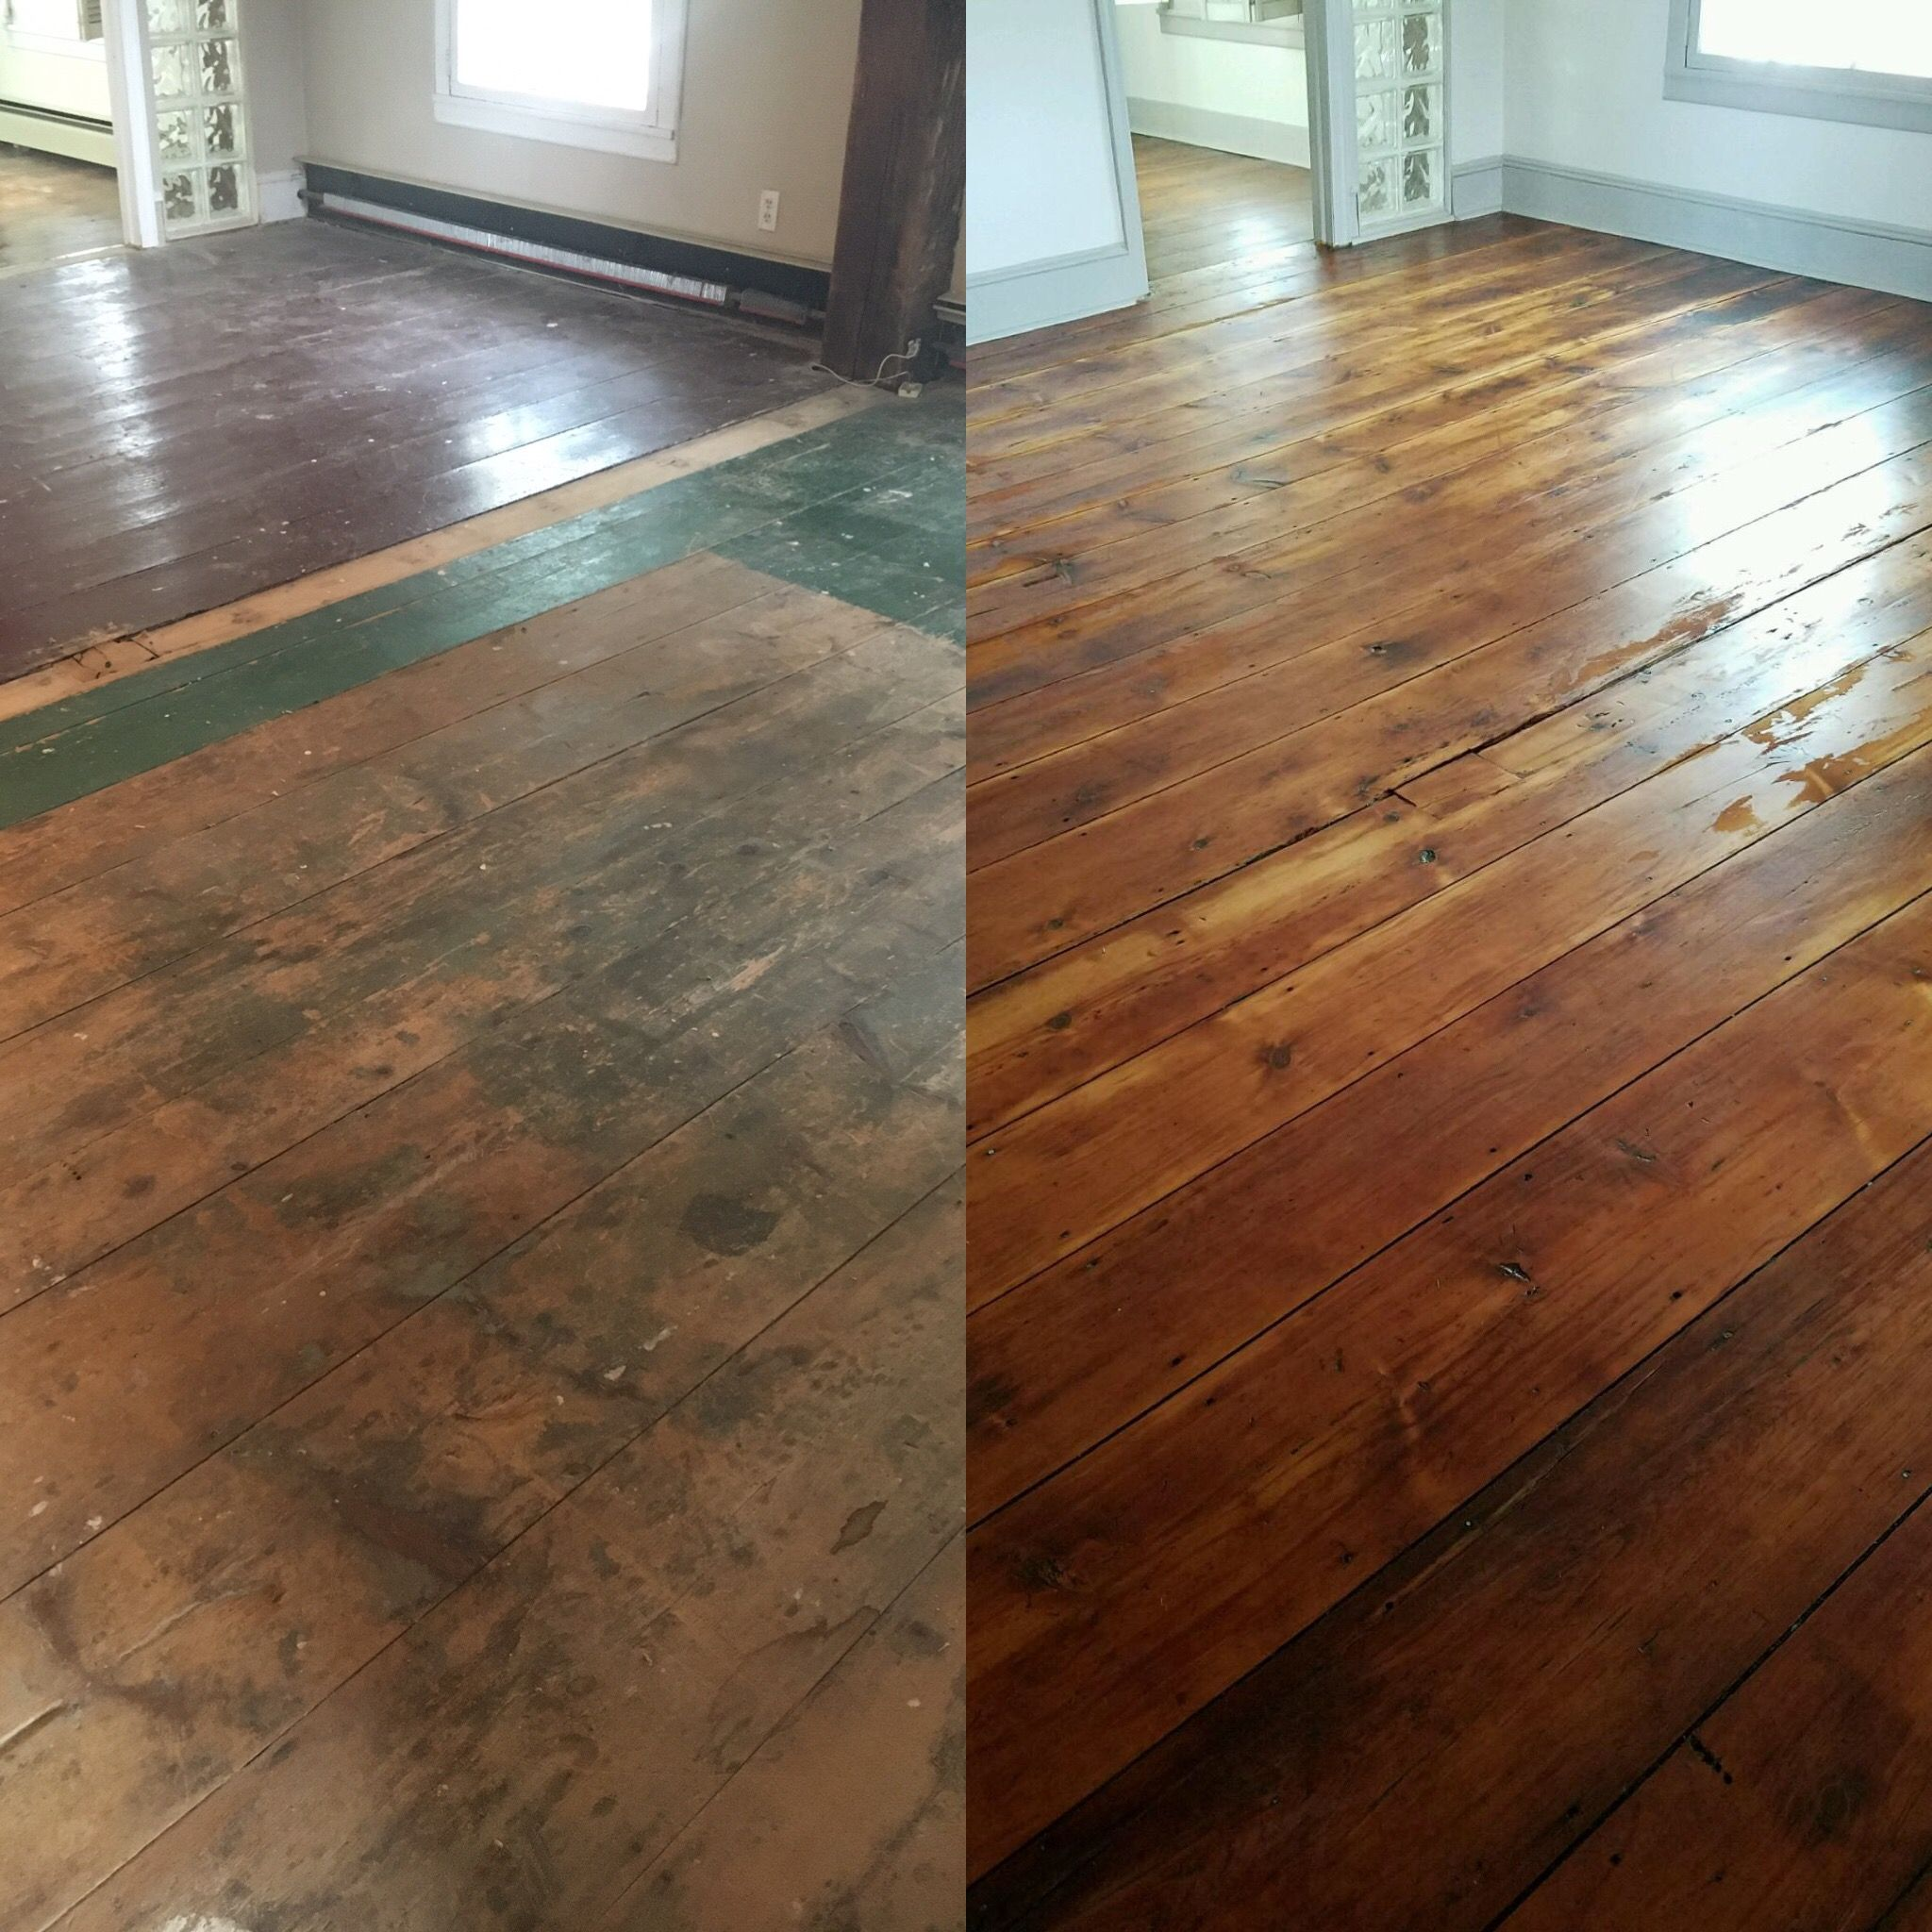 a76afc3dd9cc9 Original wood floors, pumpkin pine floors, circa 1840, before and after  refinishing old floors